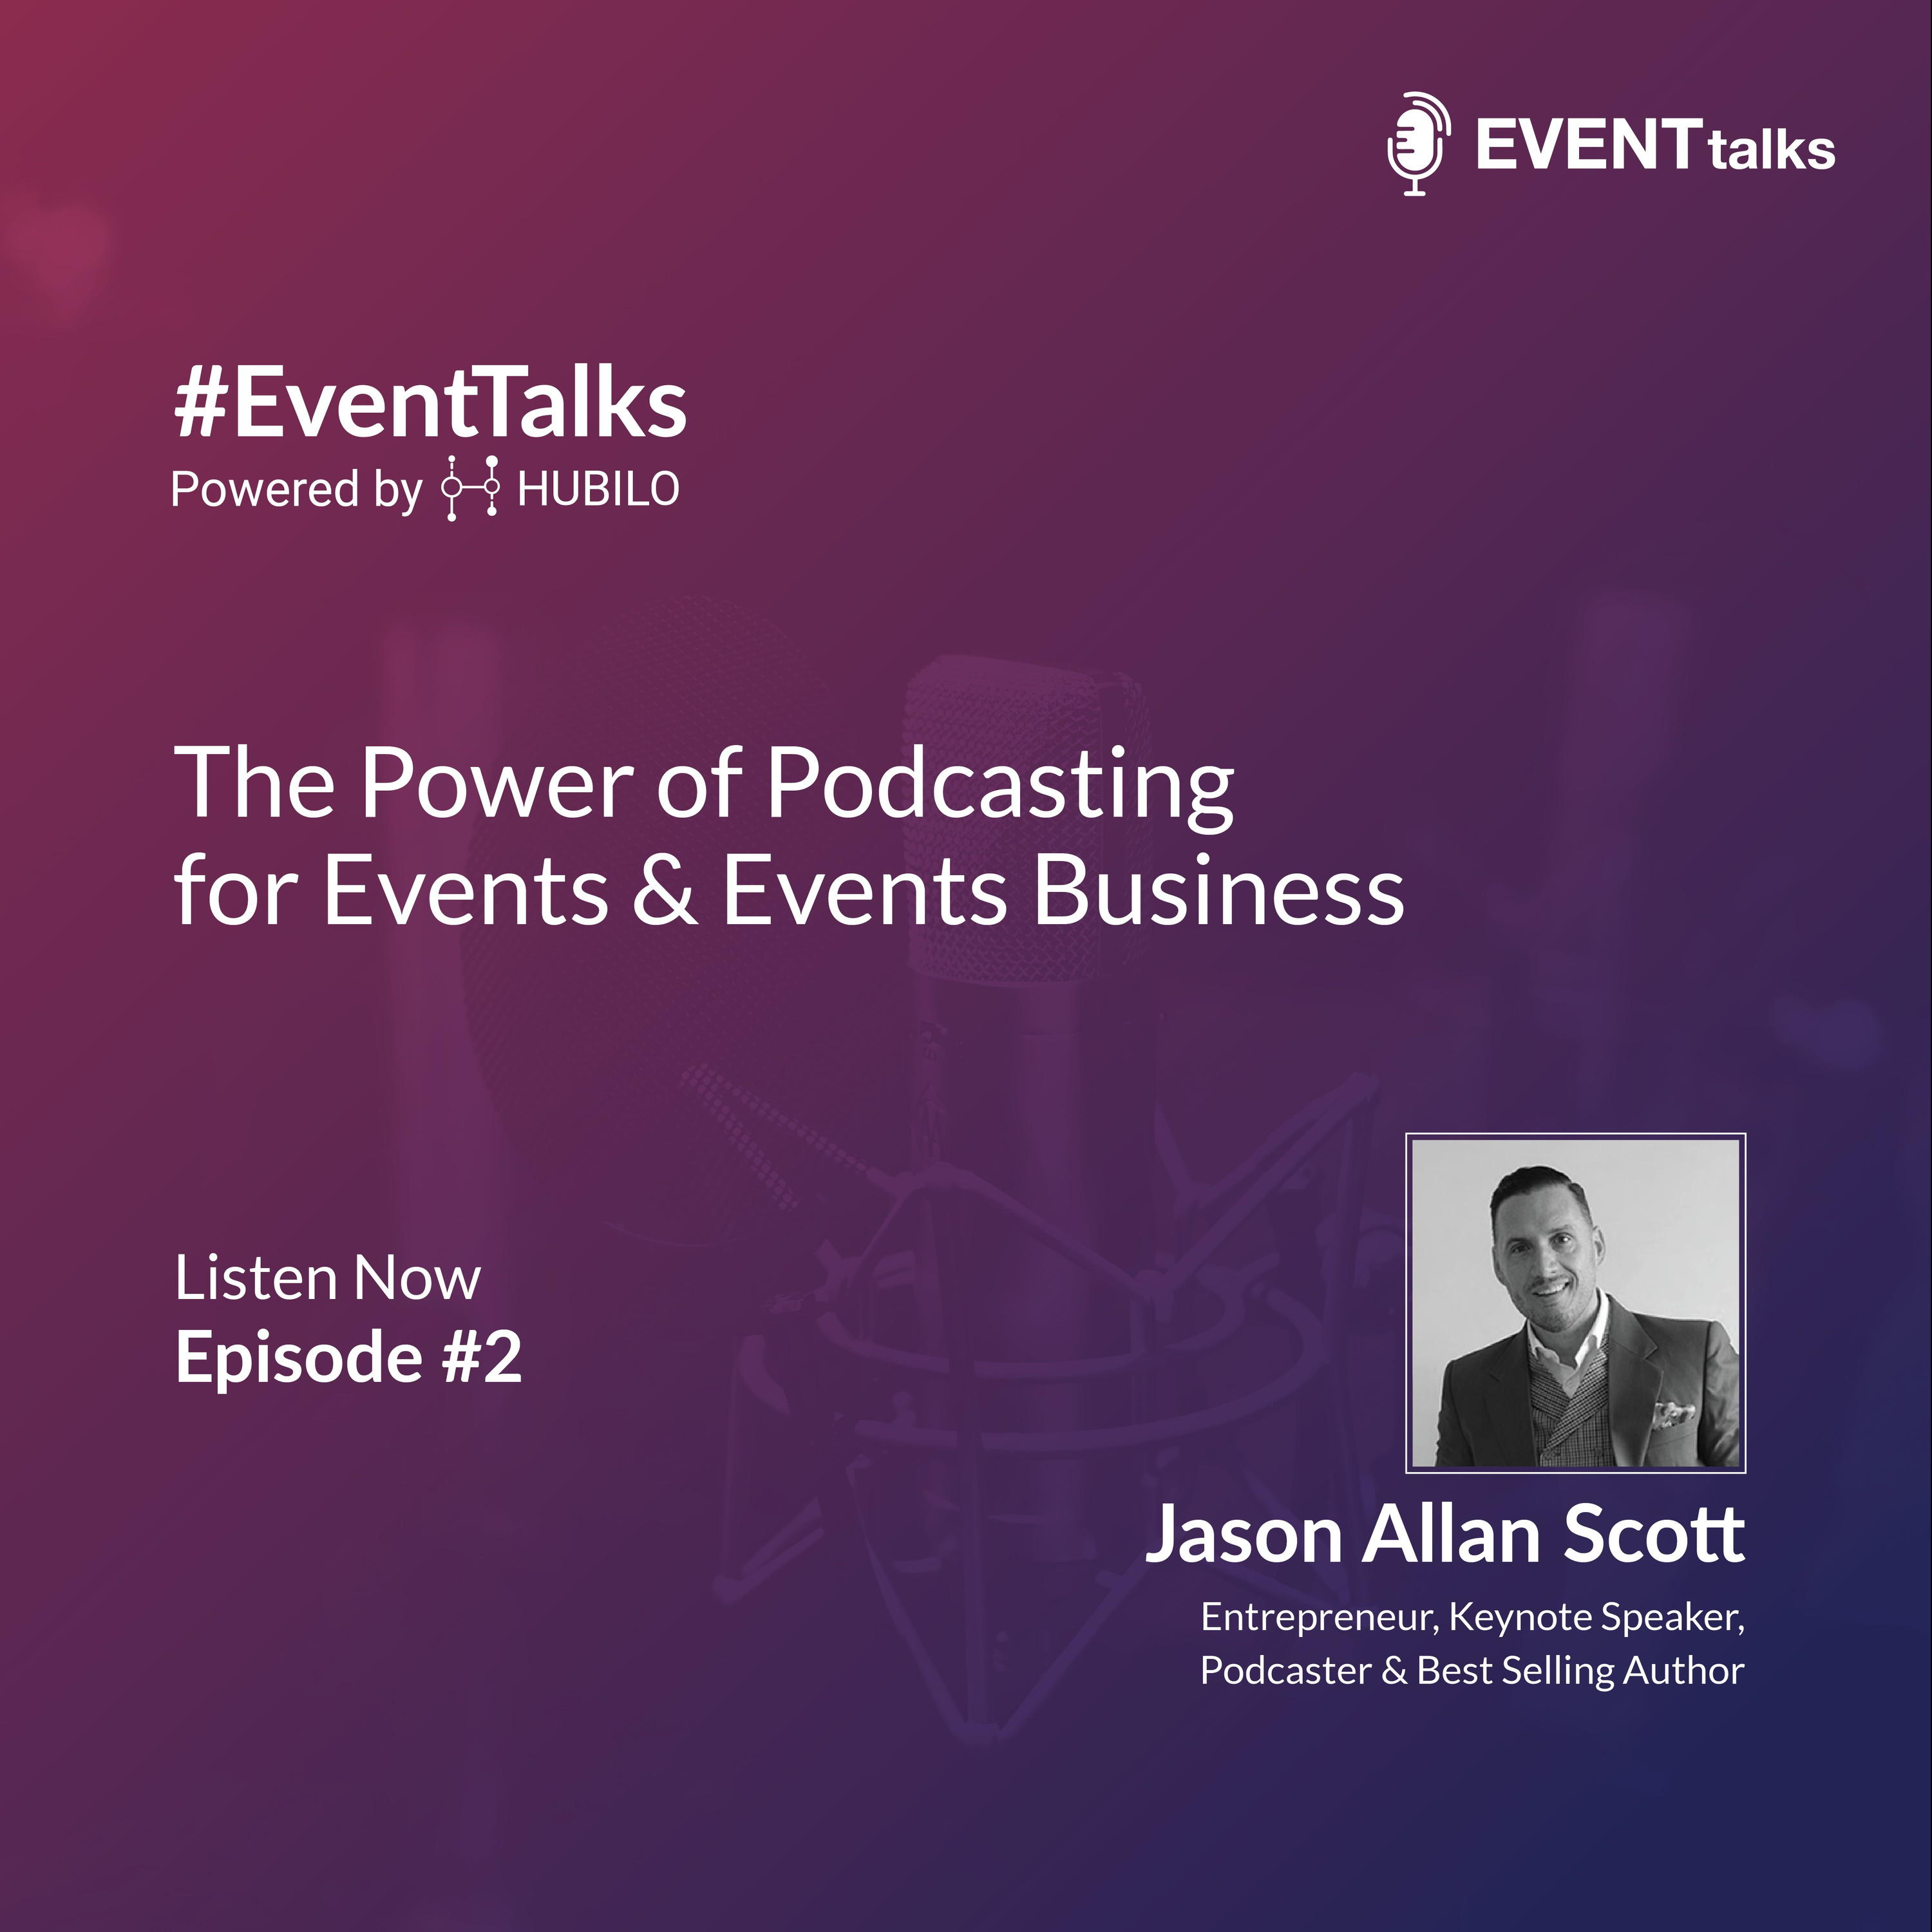 [#EventTalks] Episode #2: The Power of Podcasting for Events and Events Business by Jason Allen Scott